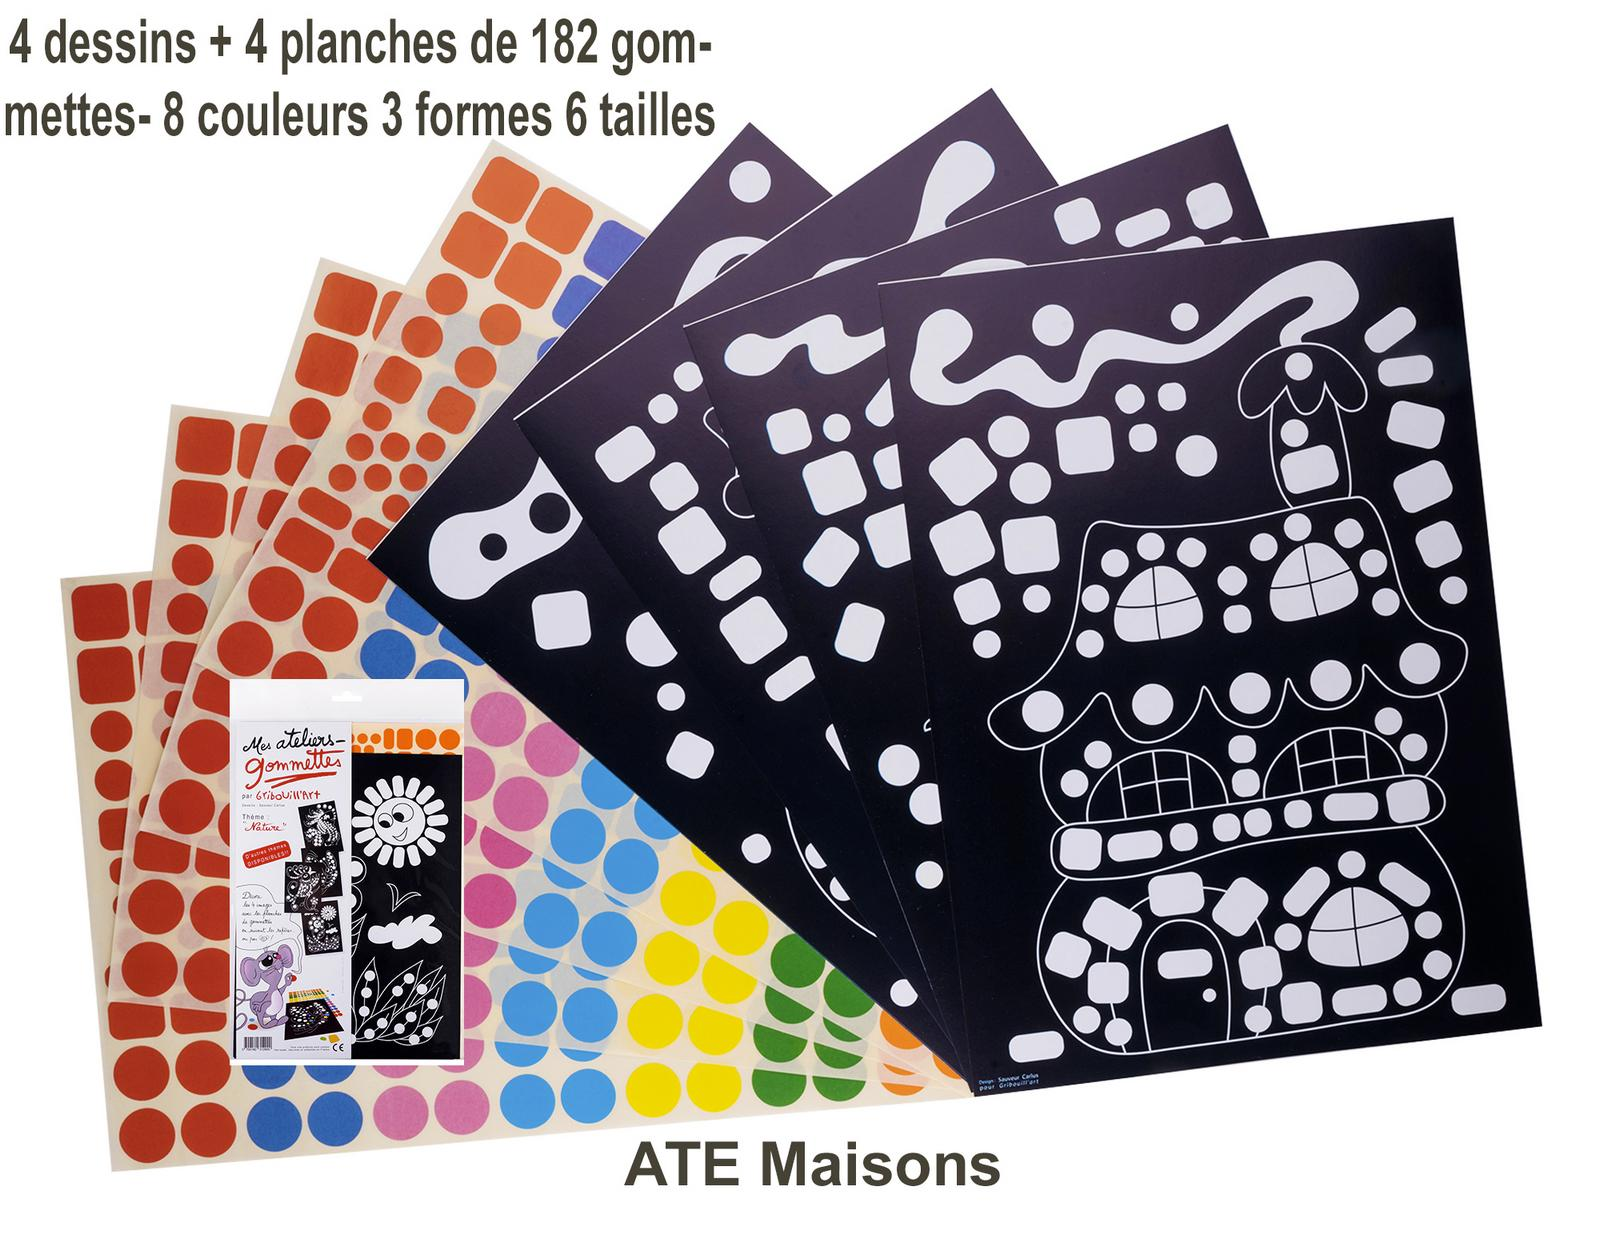 83 -ATE Maisons